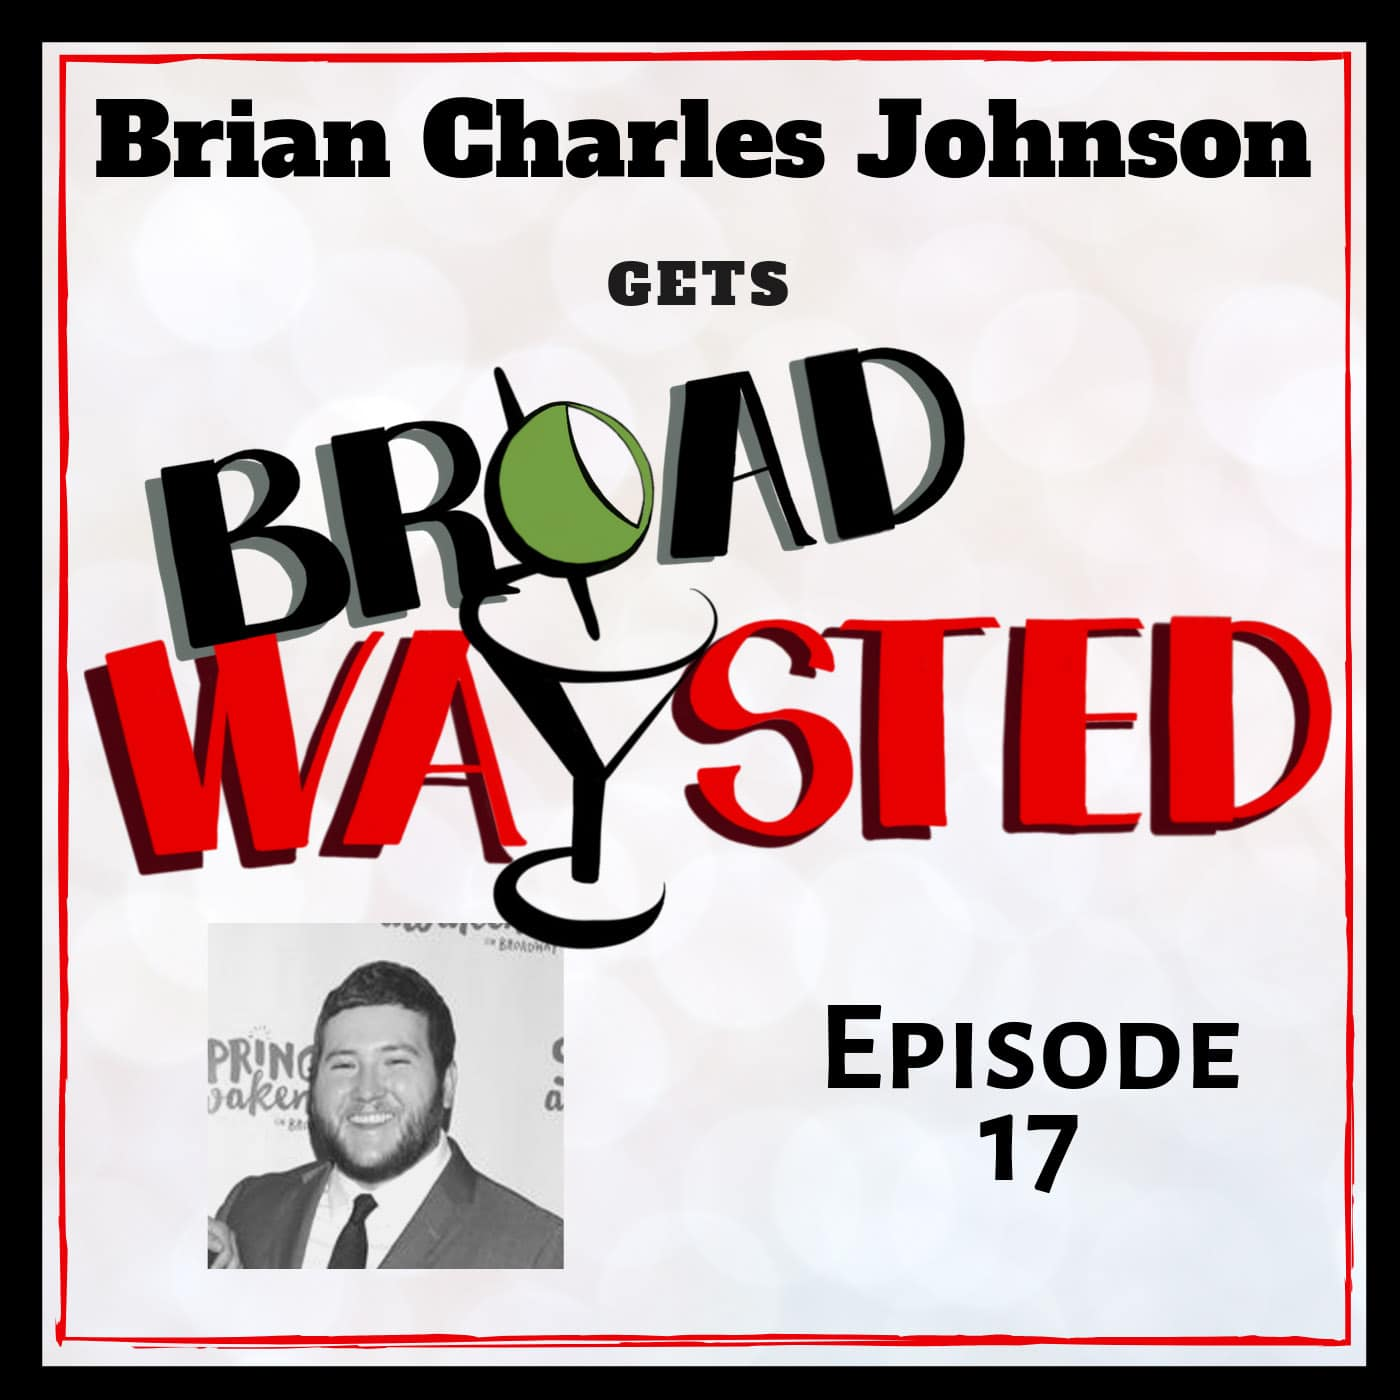 Broadwaysted Ep 17 Brian Charles Johnson